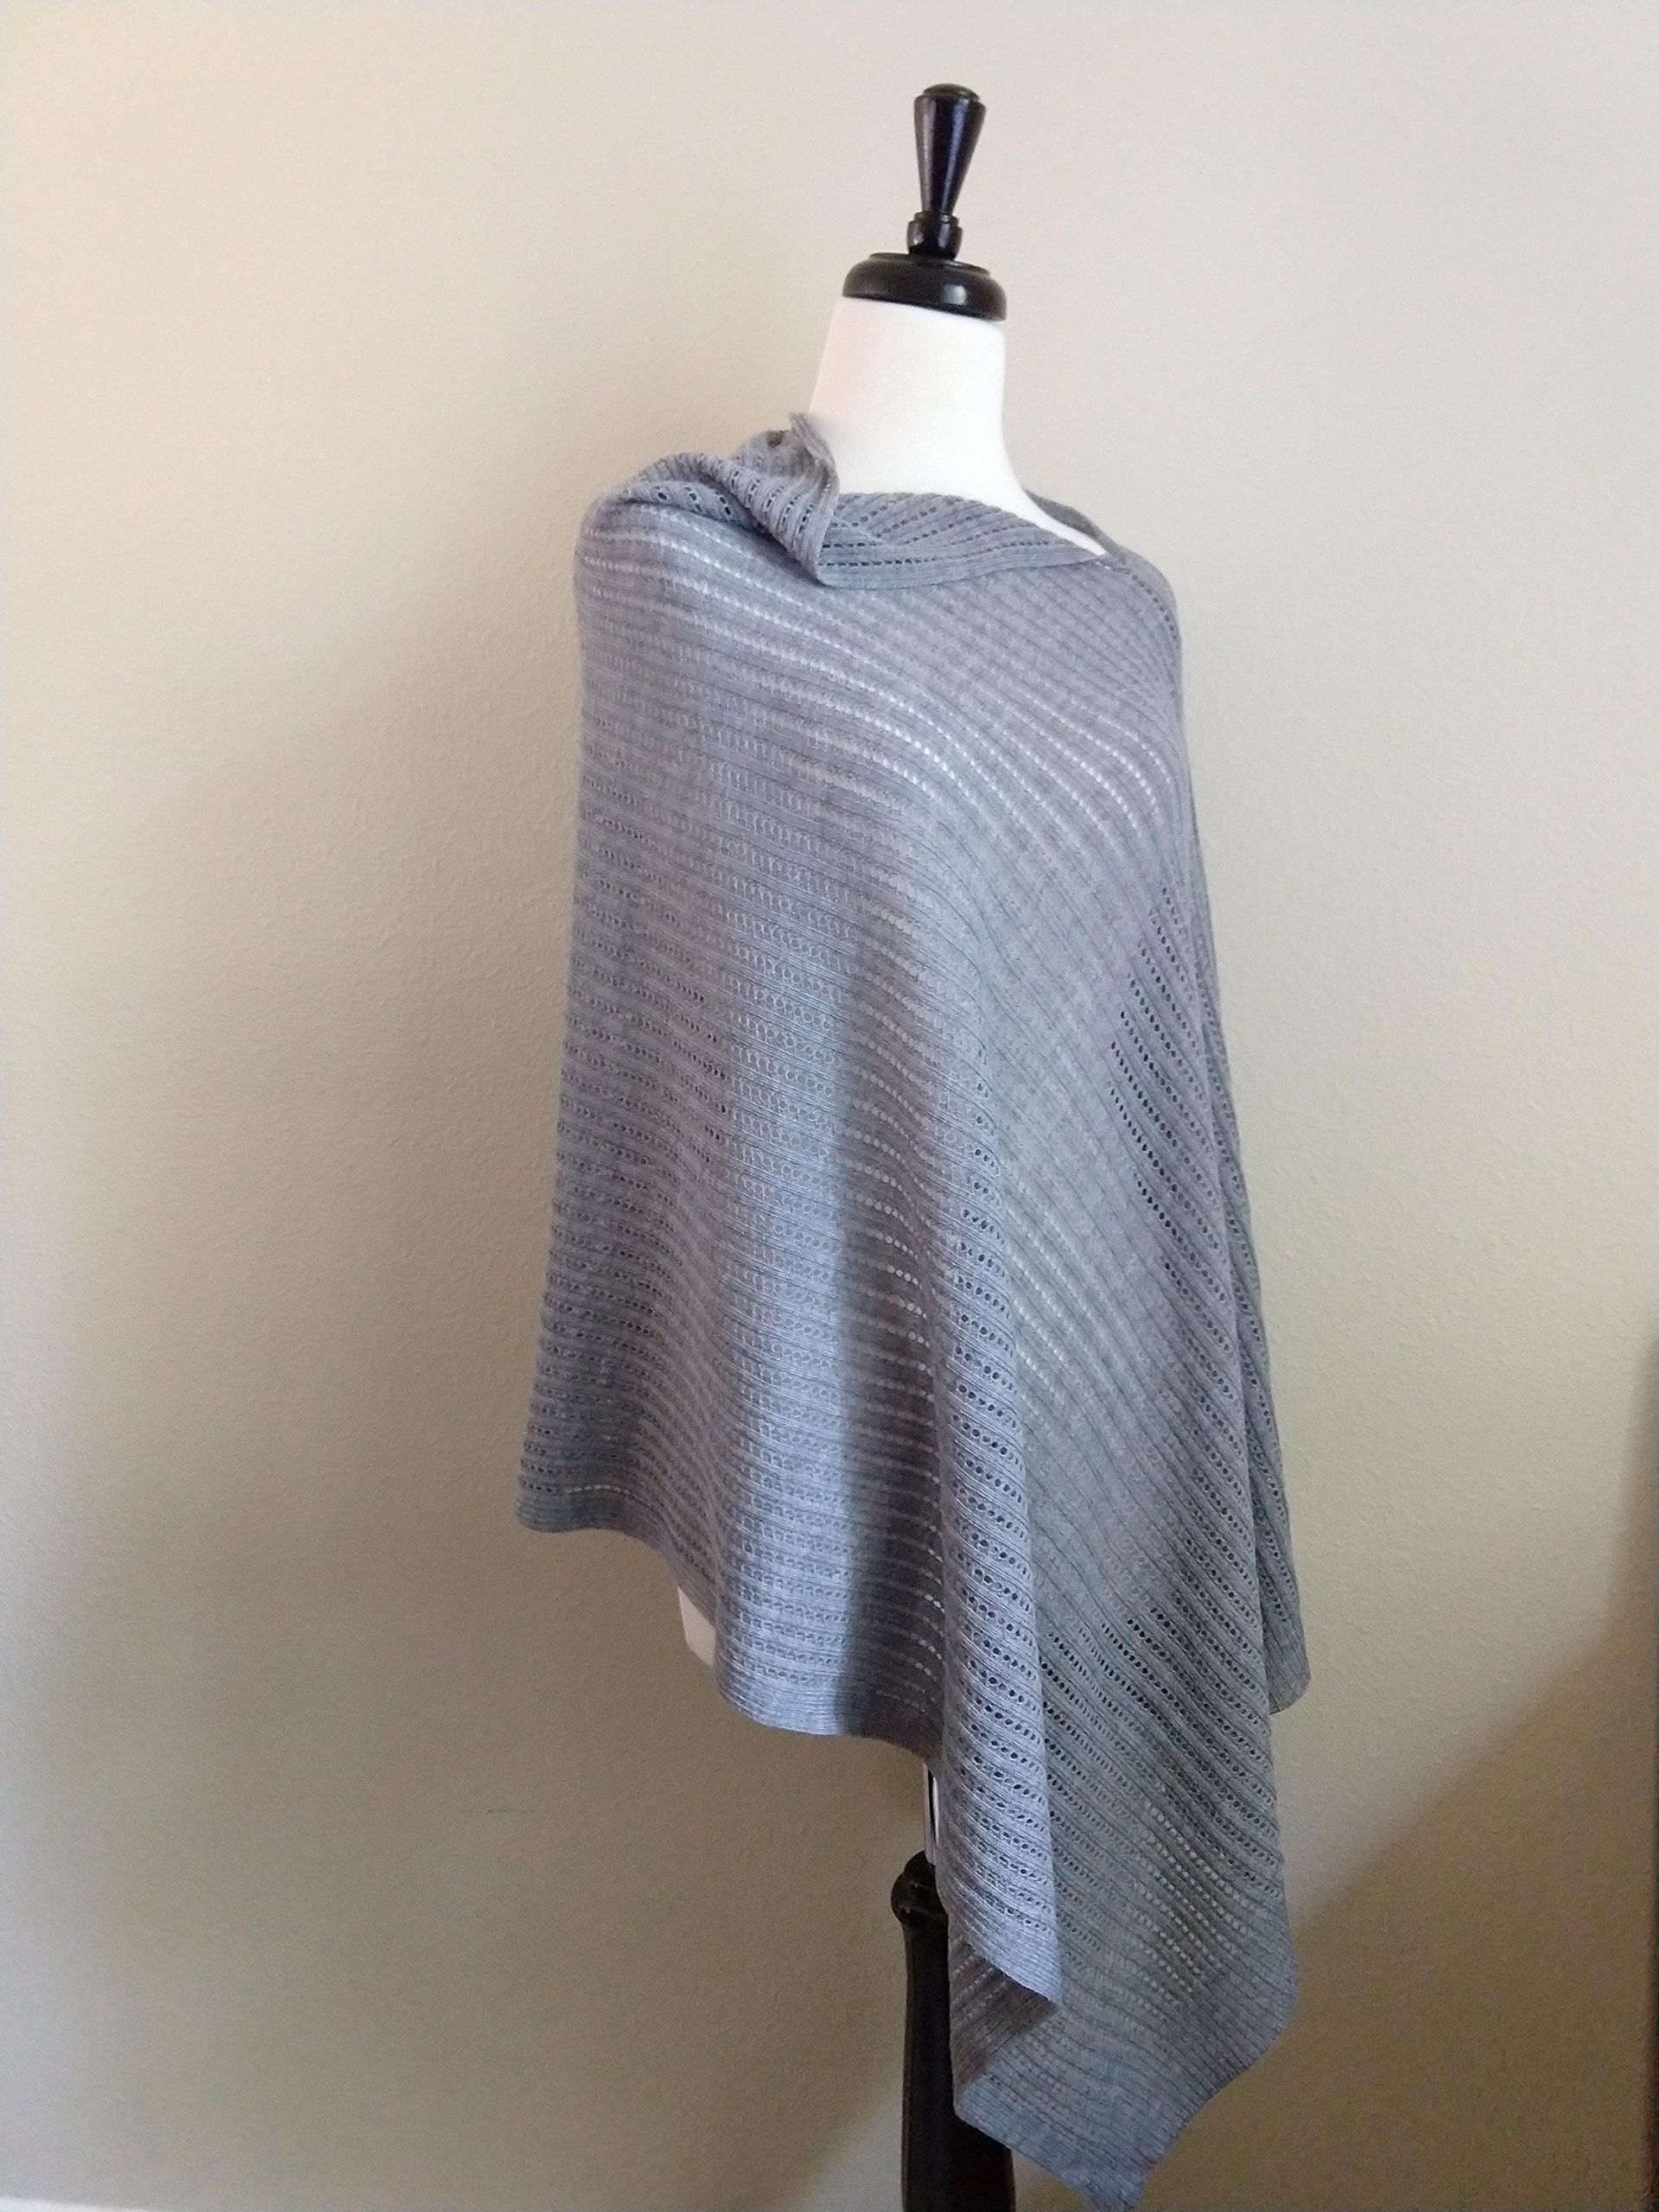 Airy Poncho, Women's Tall, Mesh Poncho, Summer Wrap, Gray